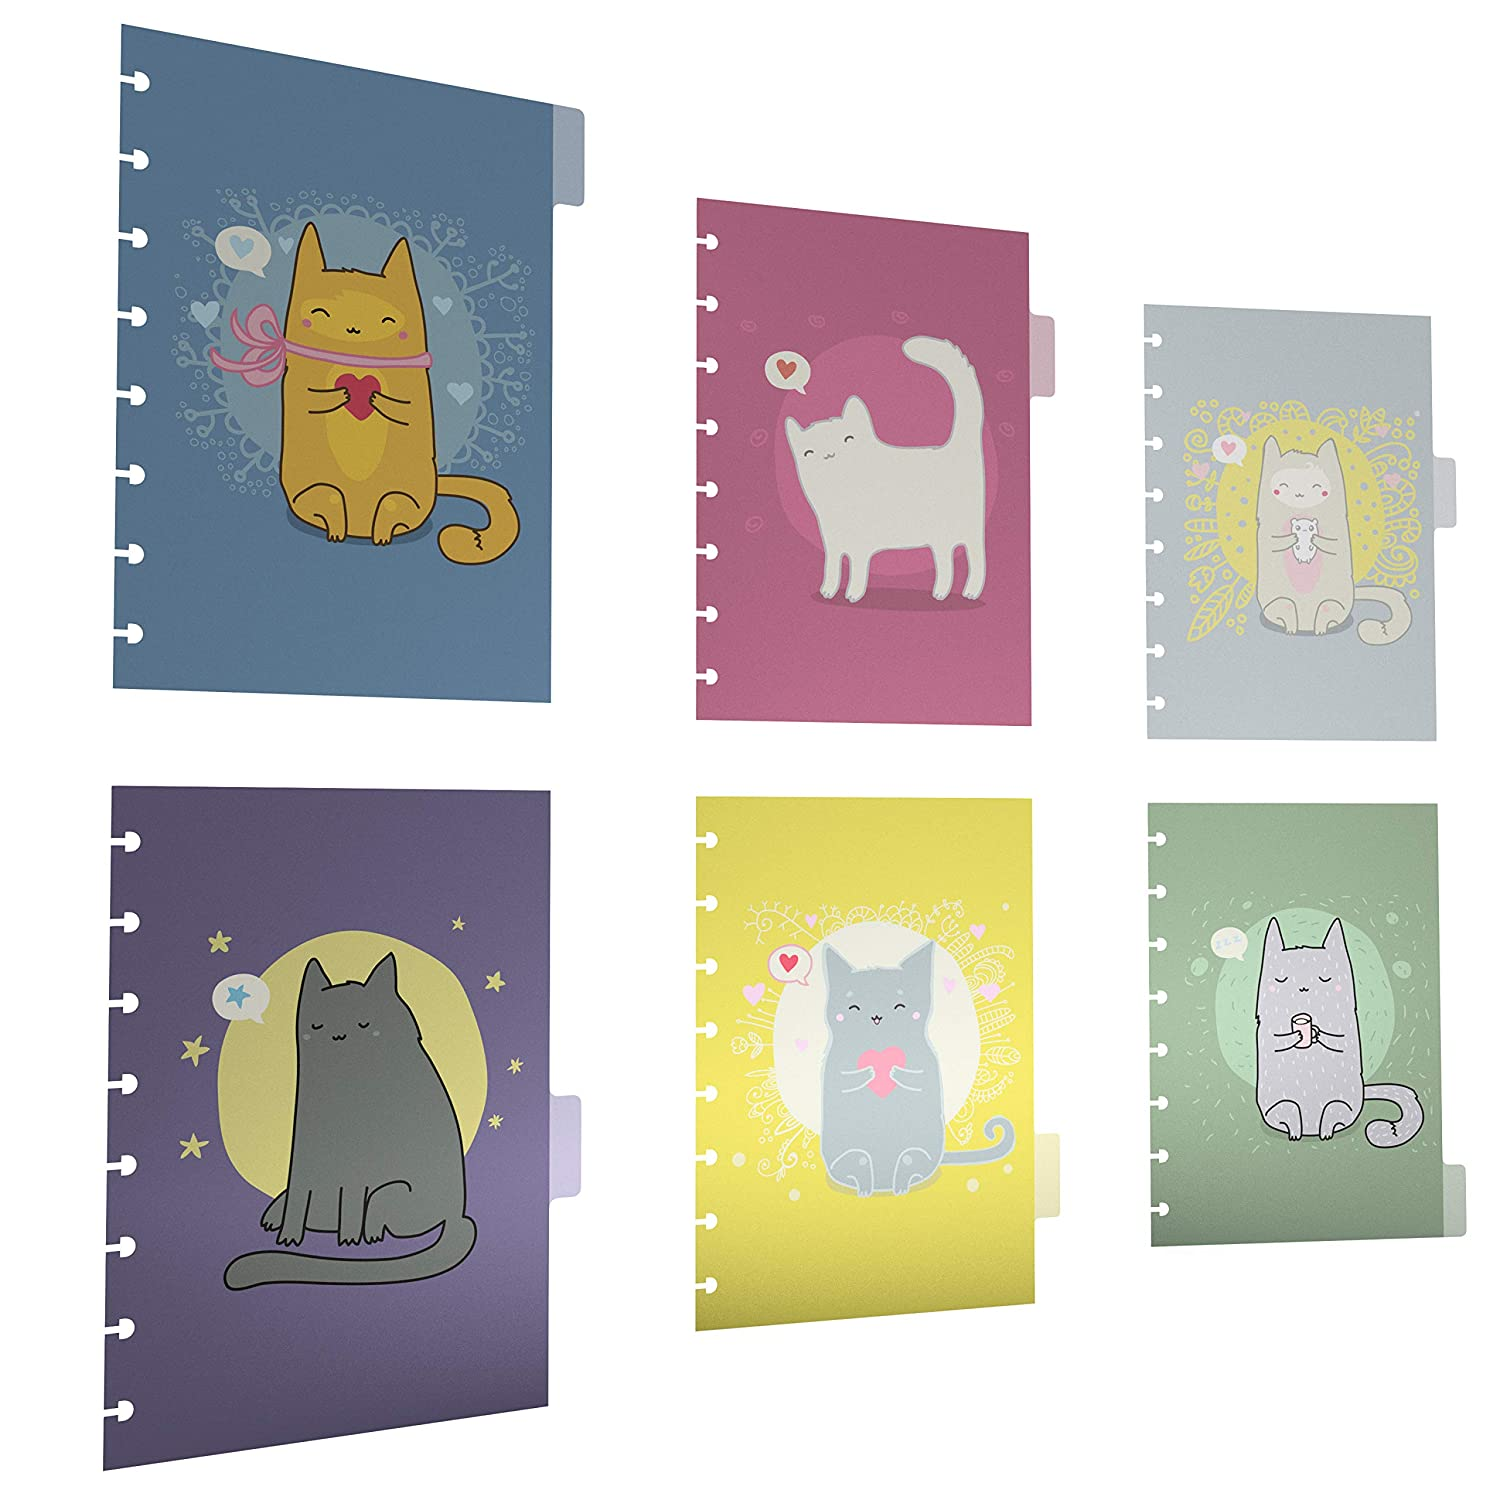 Discagenda 6 Section Dividers Plastic Durable Cute Kitten Cat for 6 Ring Planner Personal Organizer A5 // Junior Size 5.8x8.3in , Discbound